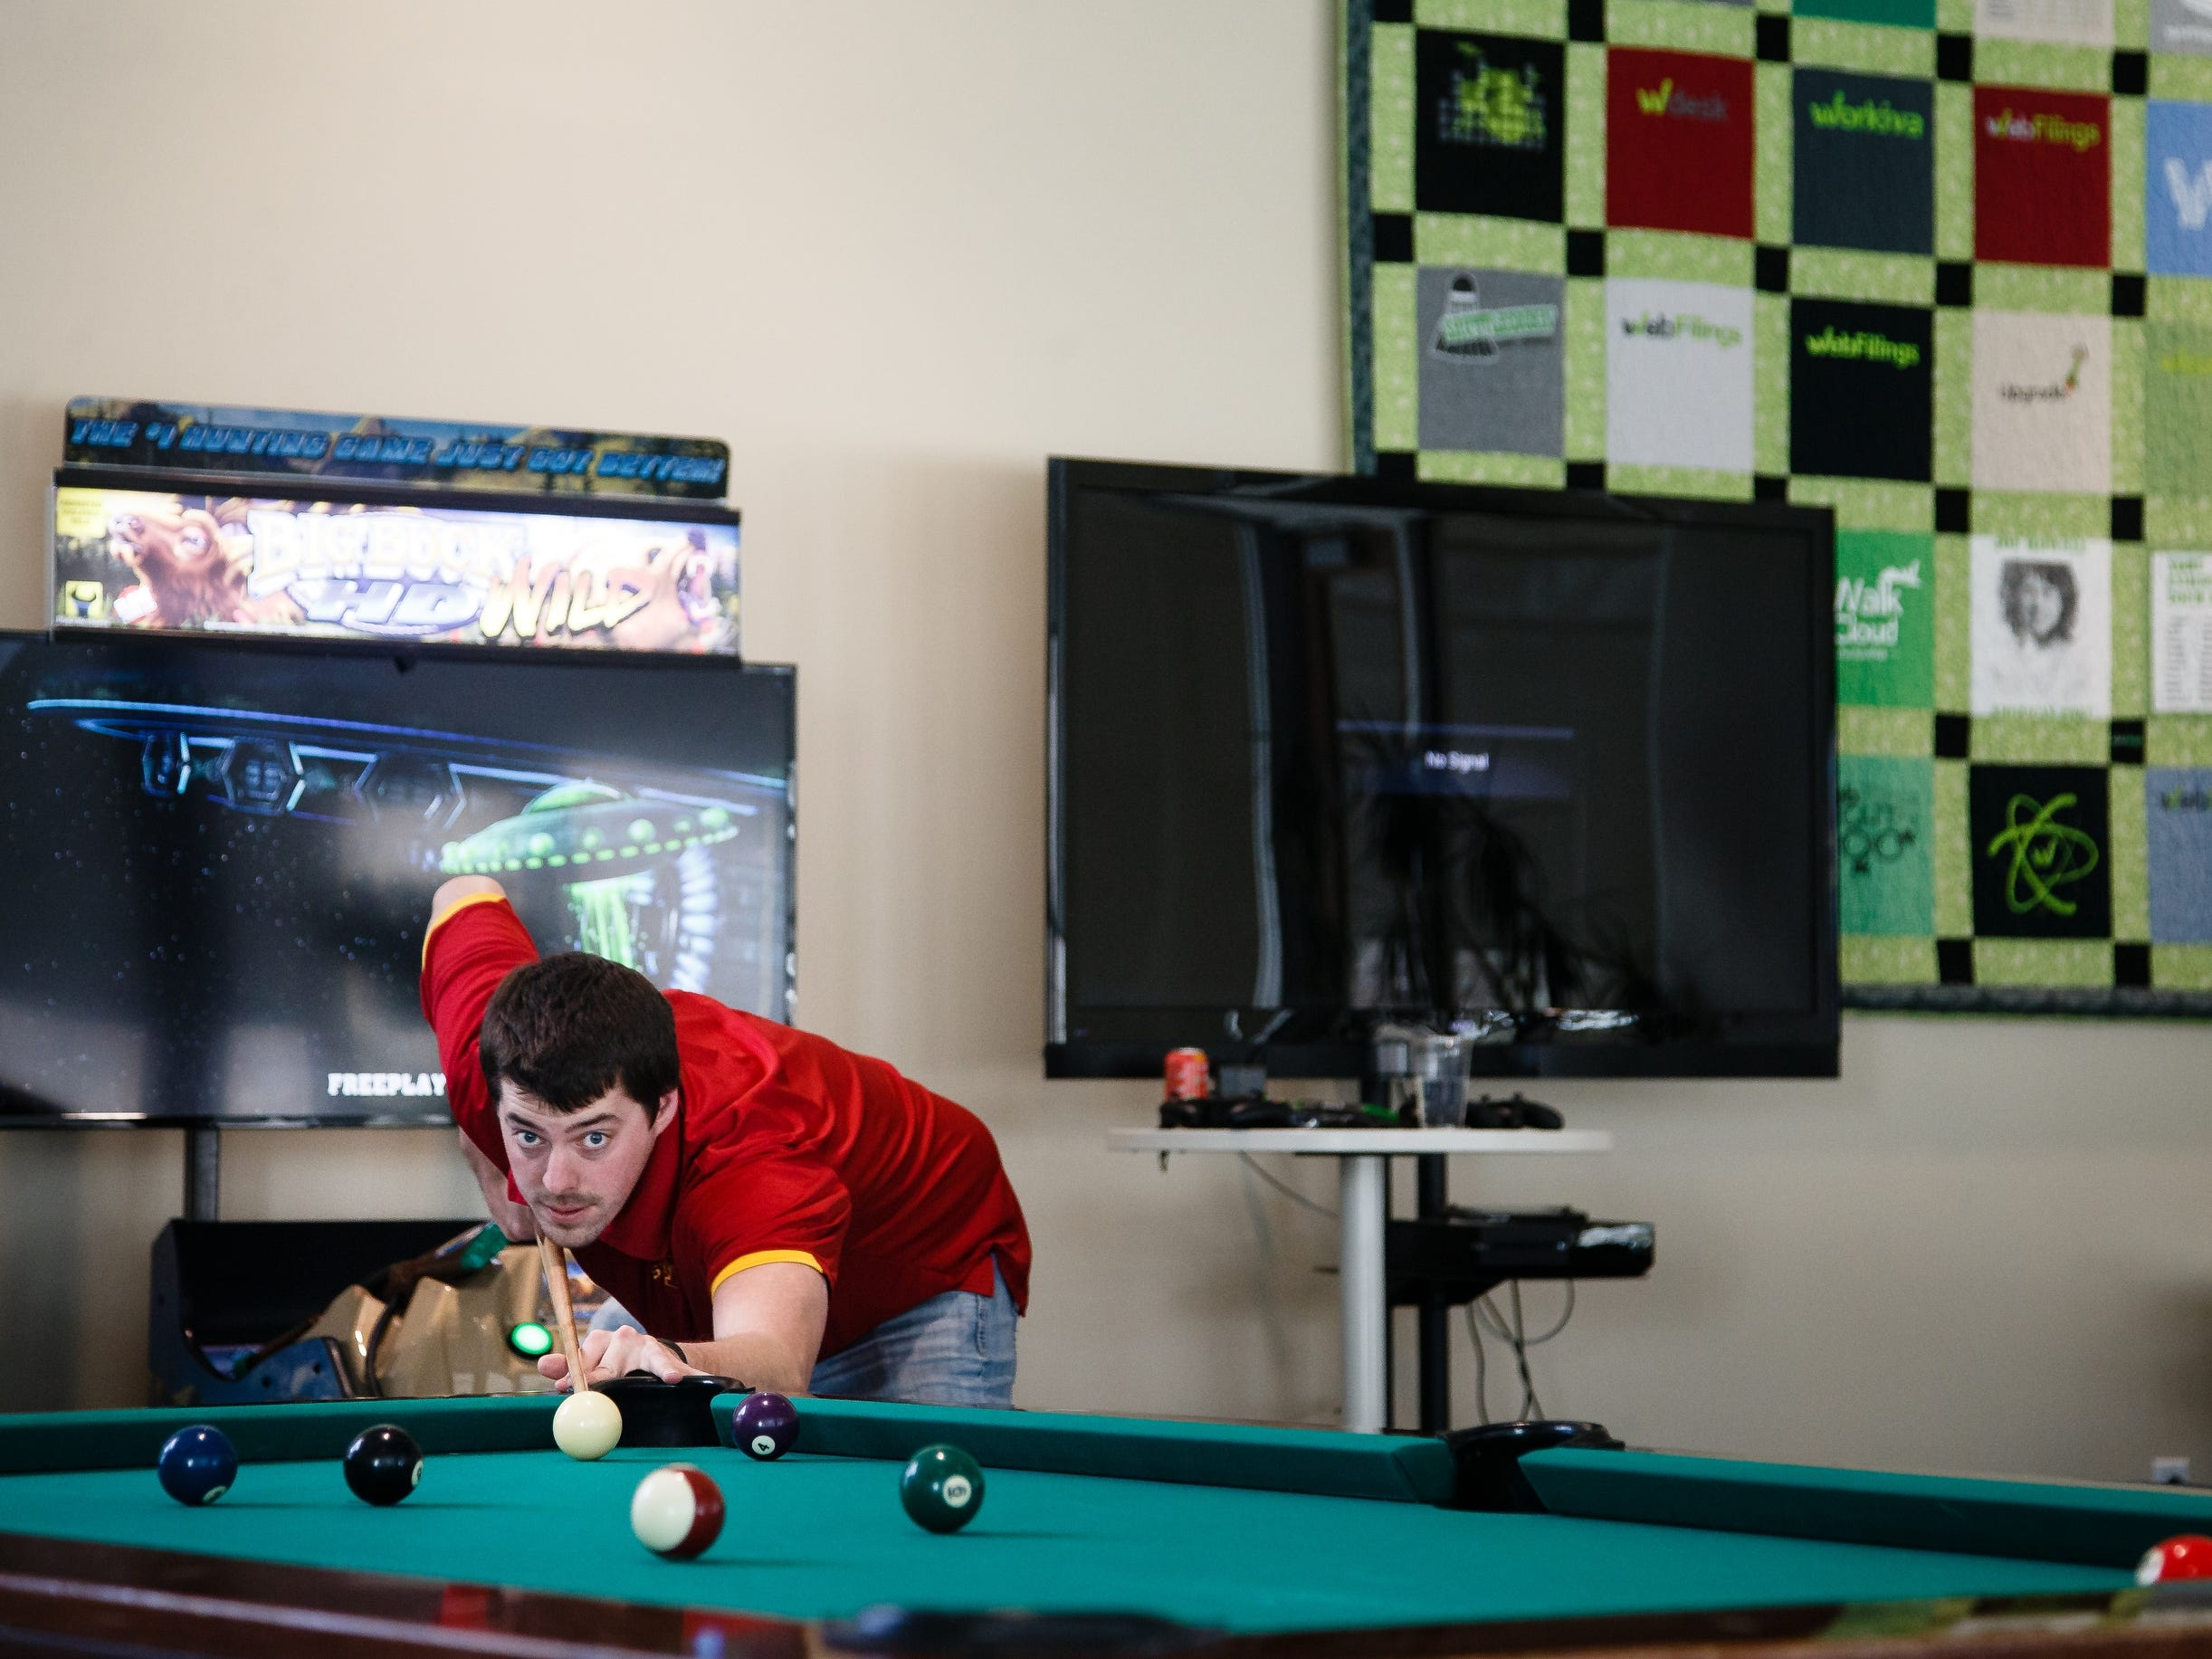 Kyle Swenson, 28 of Ames, takes a break from work to play a game of pool at Workiva, a tech company in Ames, on Friday, March 15, 2019.